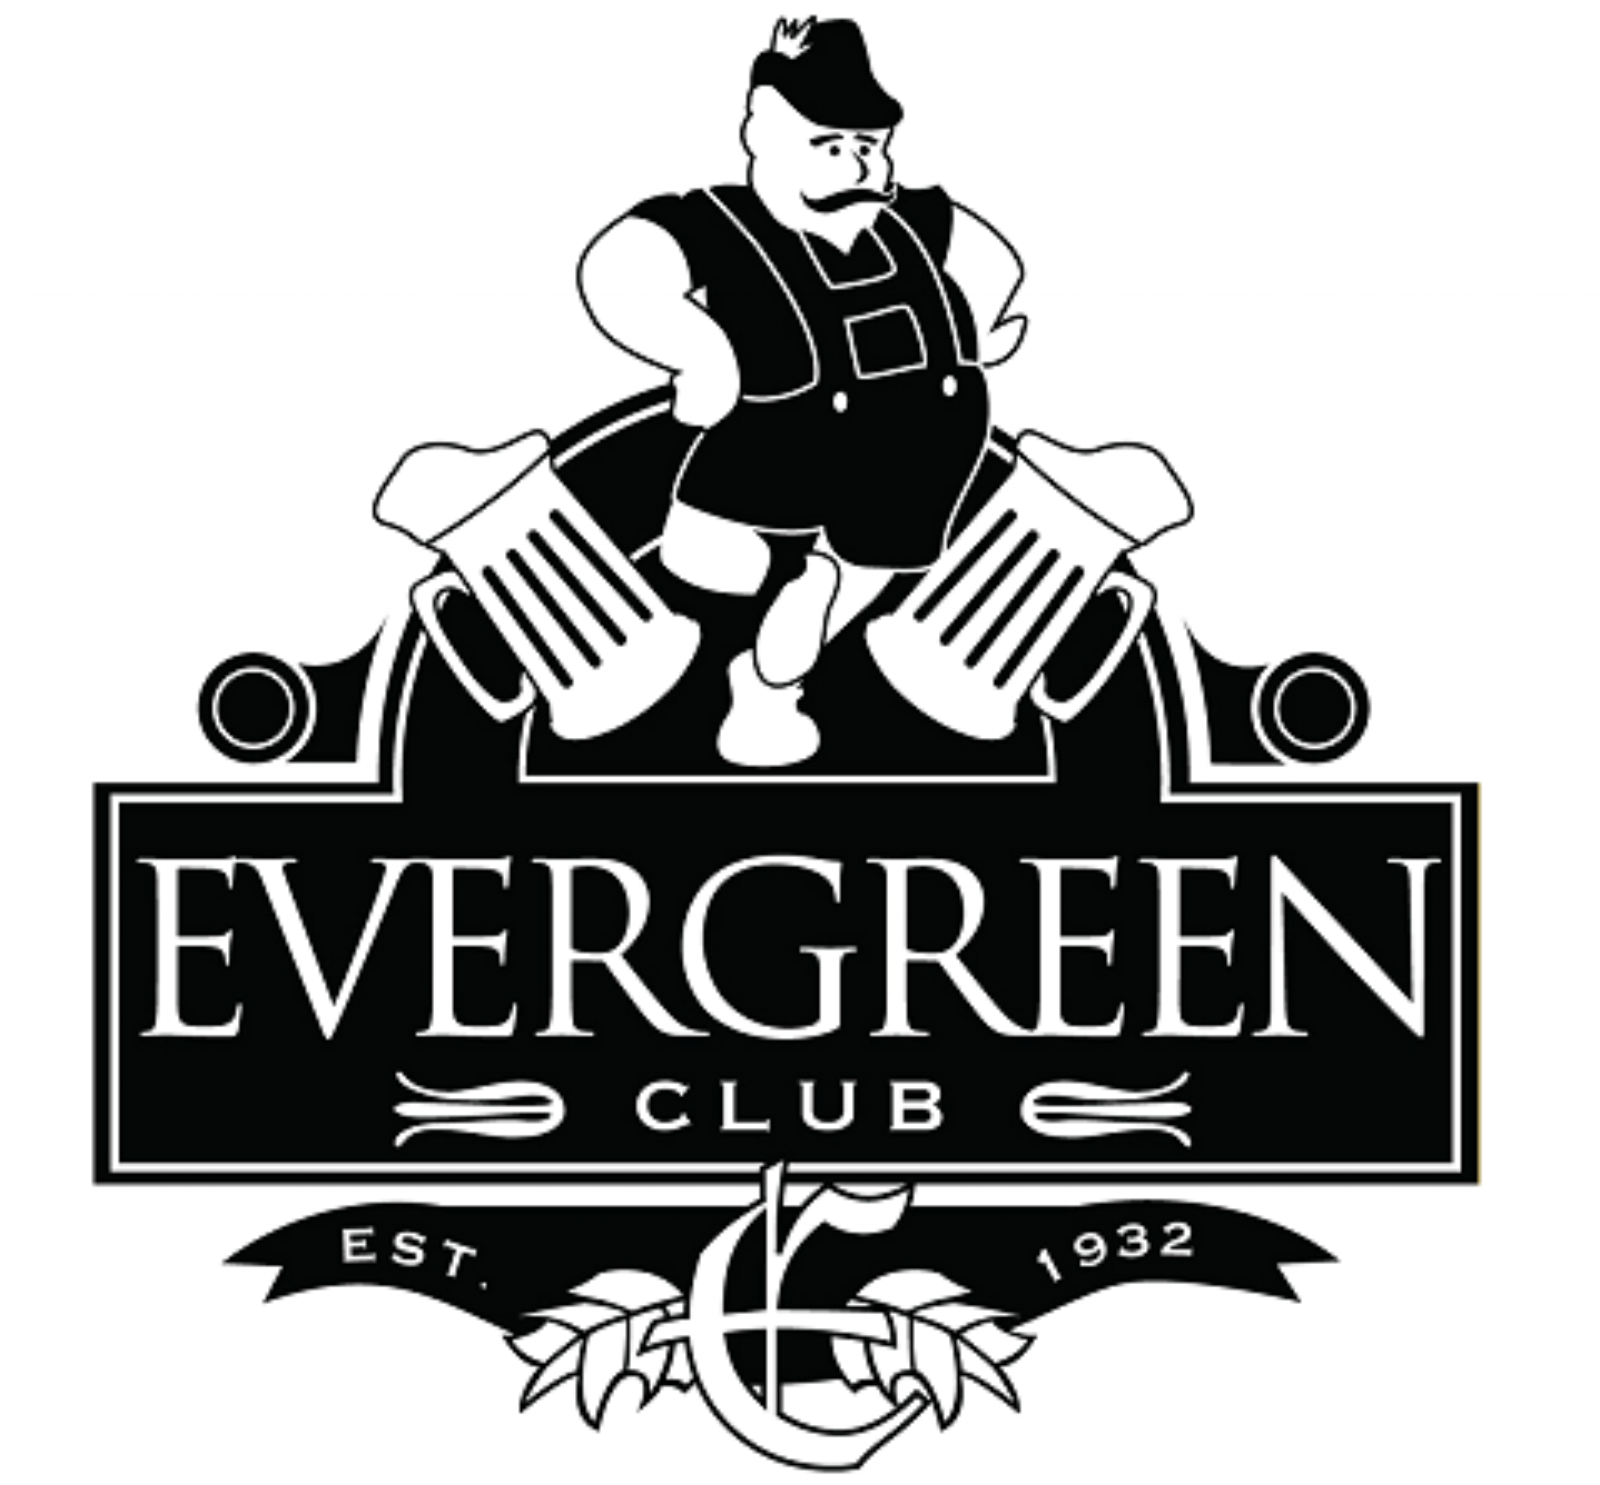 The Evergreen Country Club